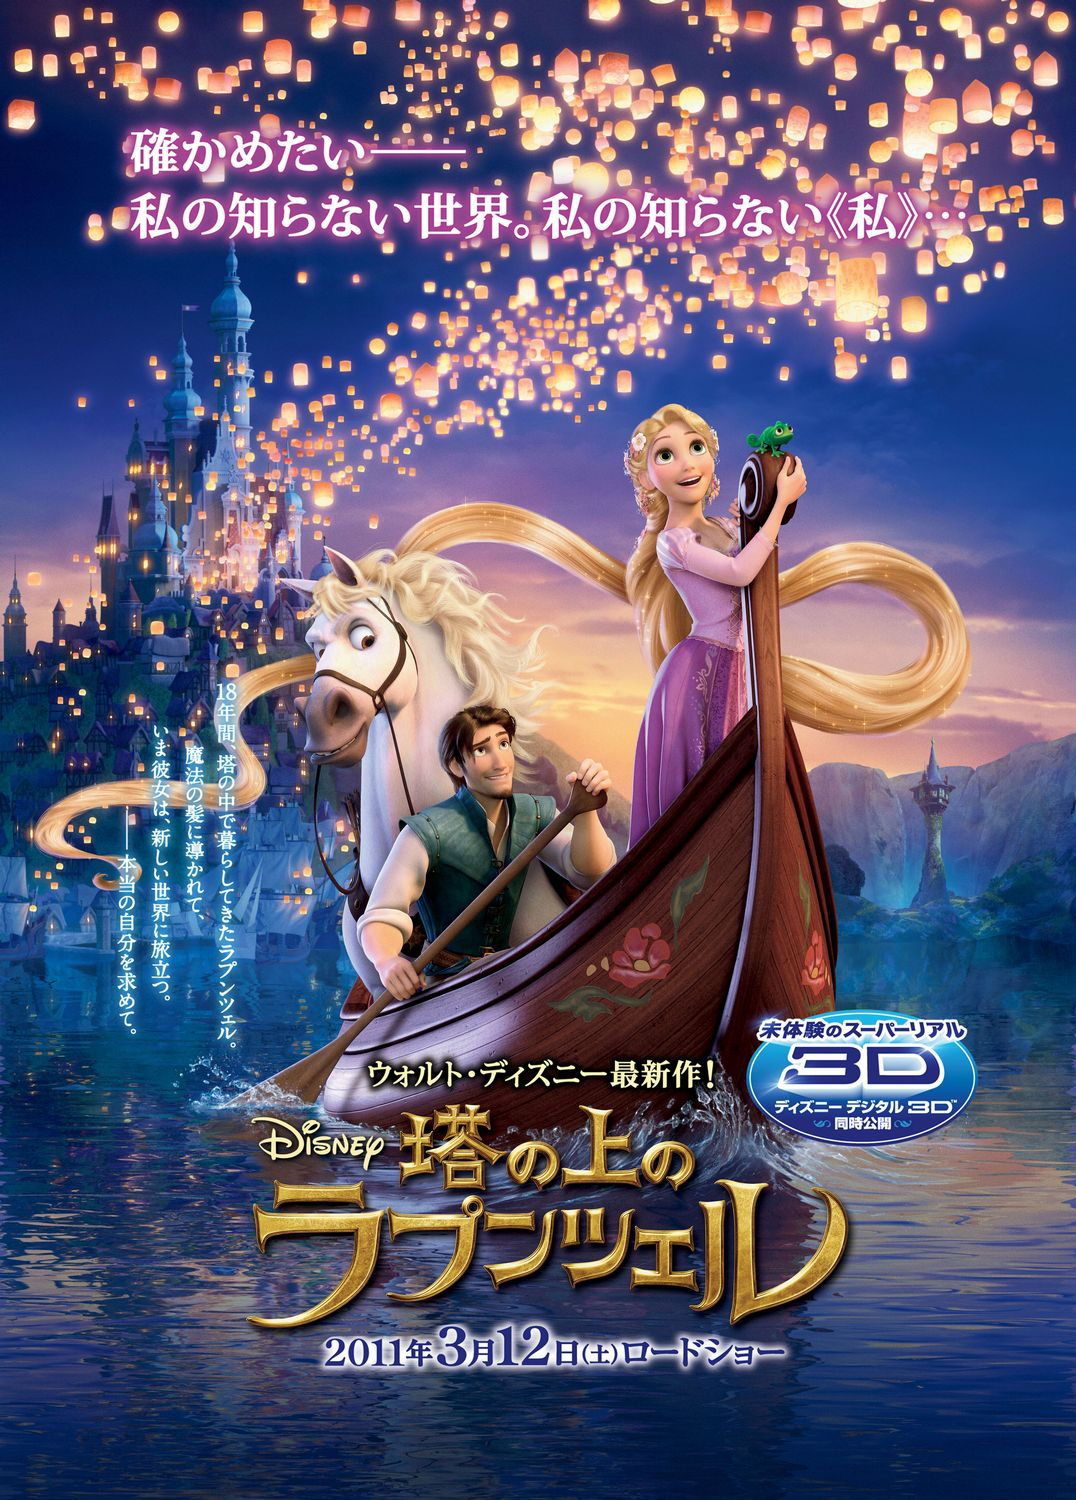 Return to Main Page for Tangled Posters